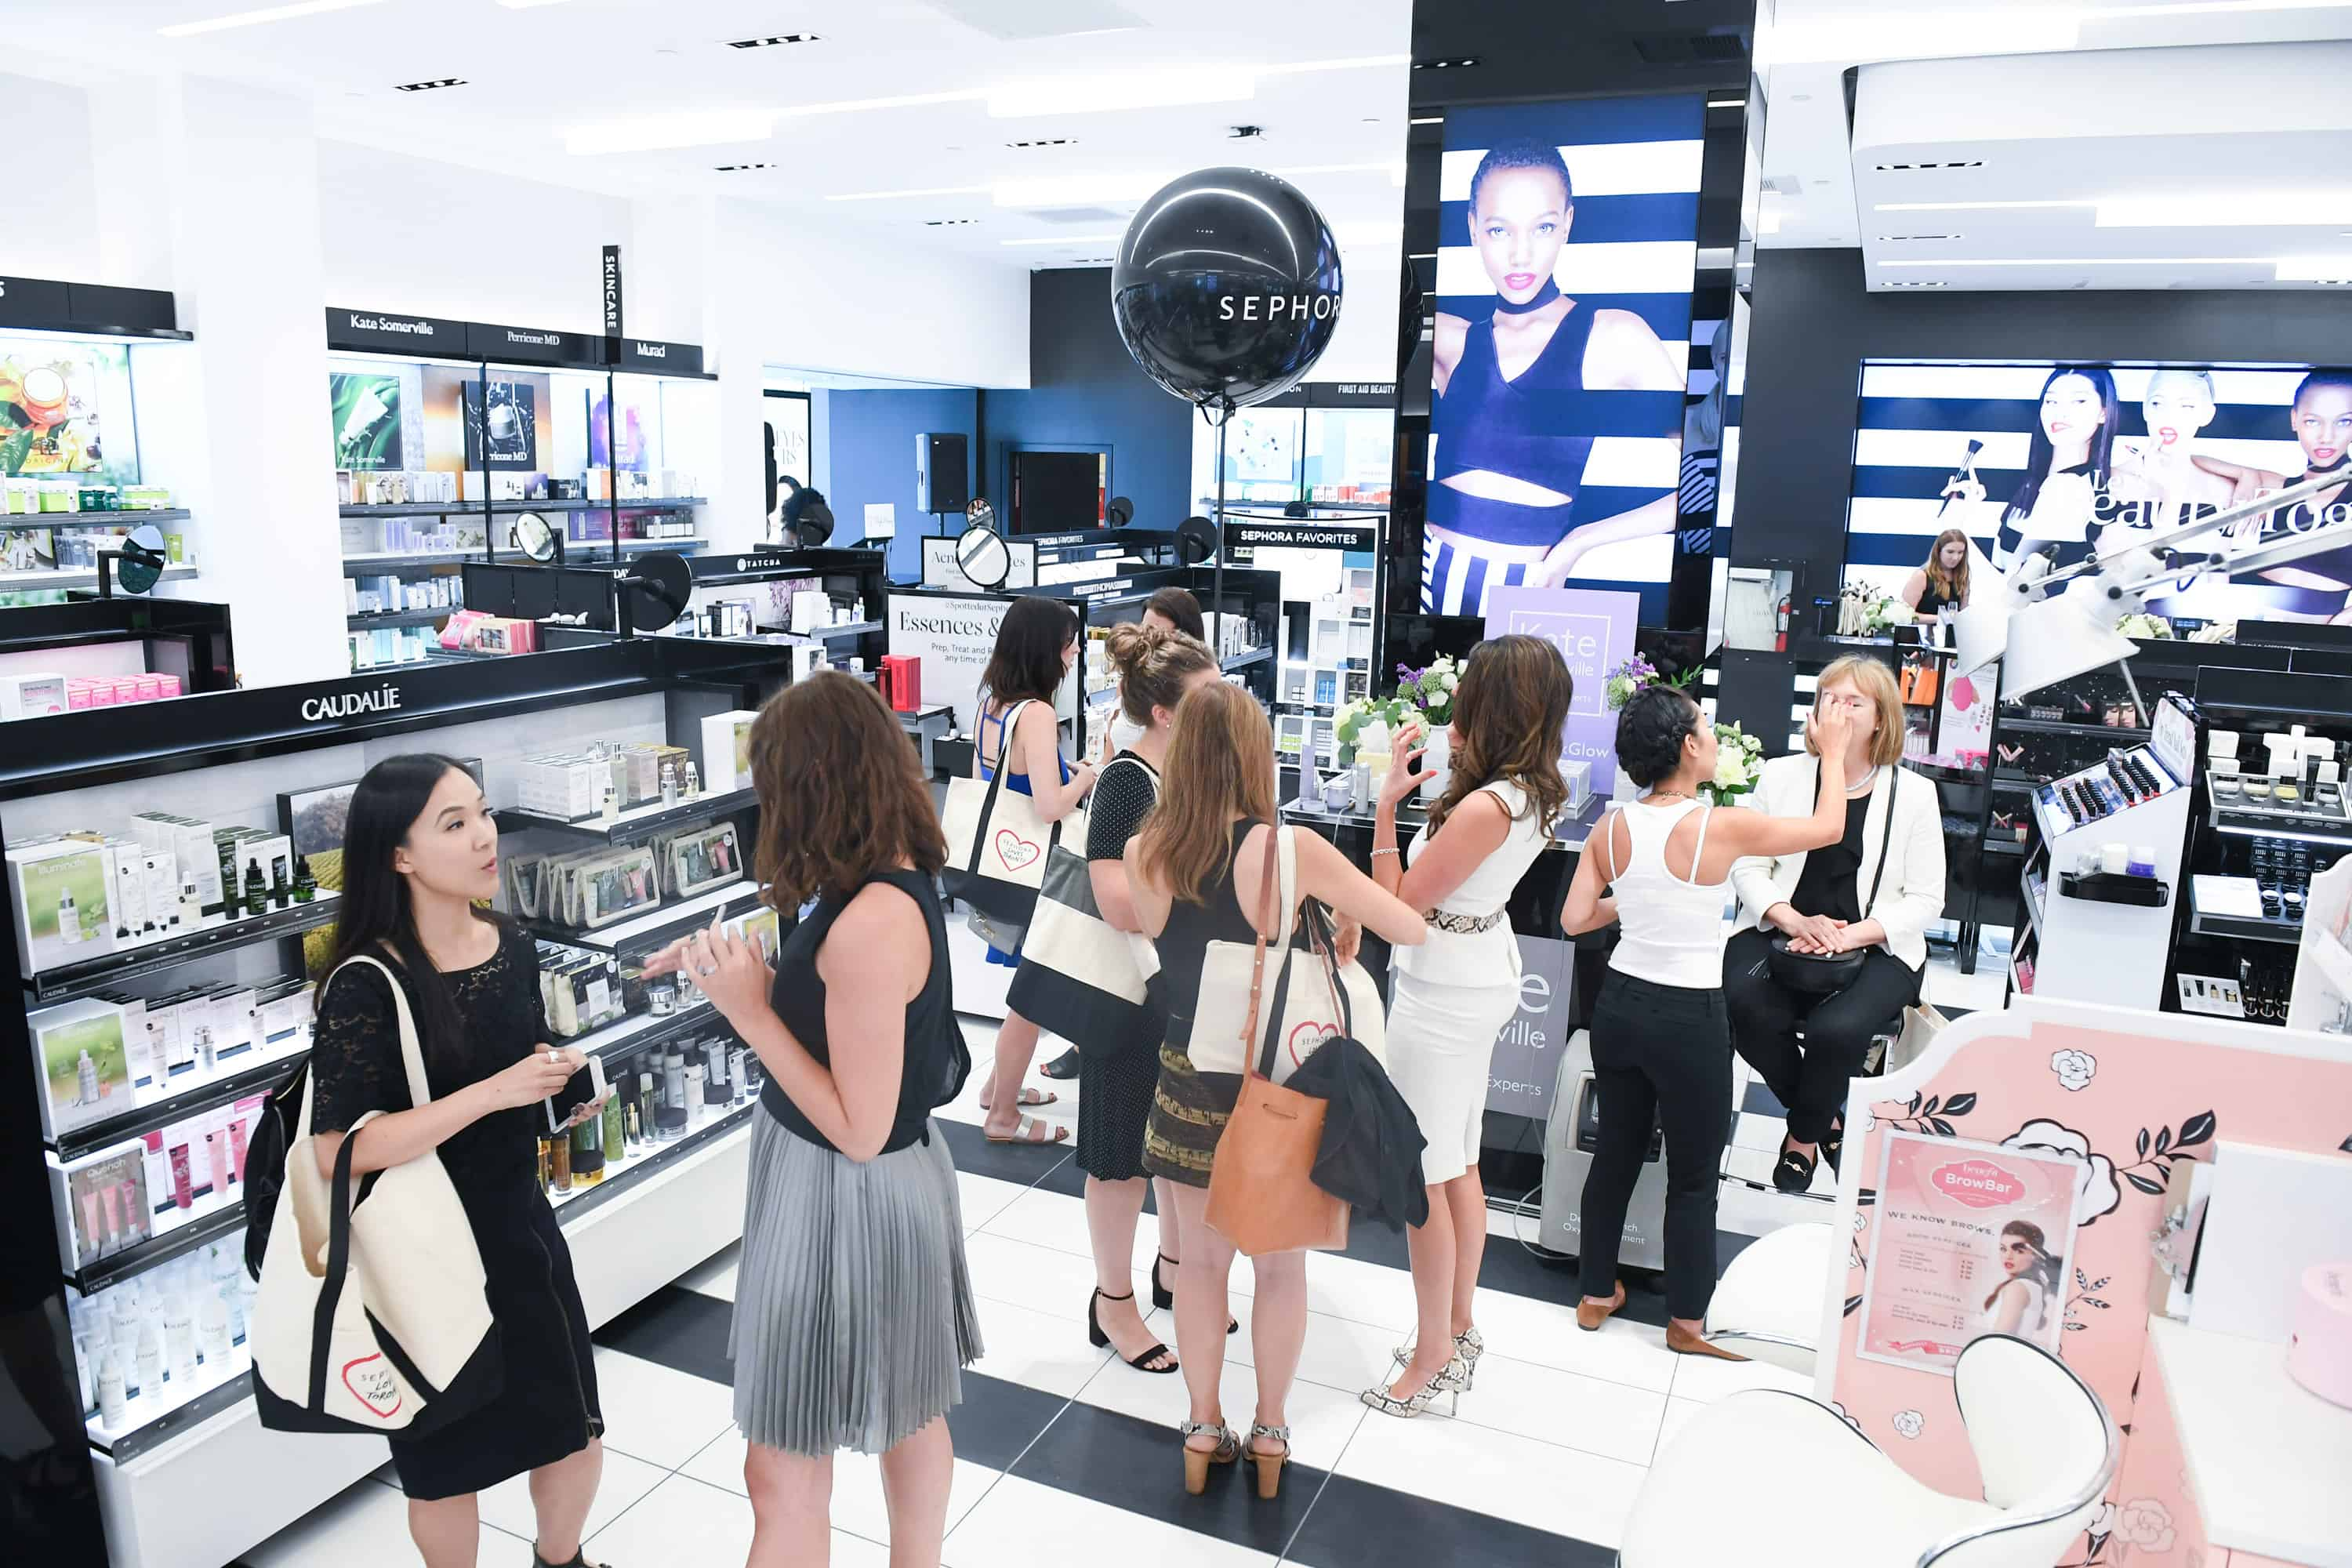 Largest Sephora Location in North America Now Open at Yonge and Eglinton